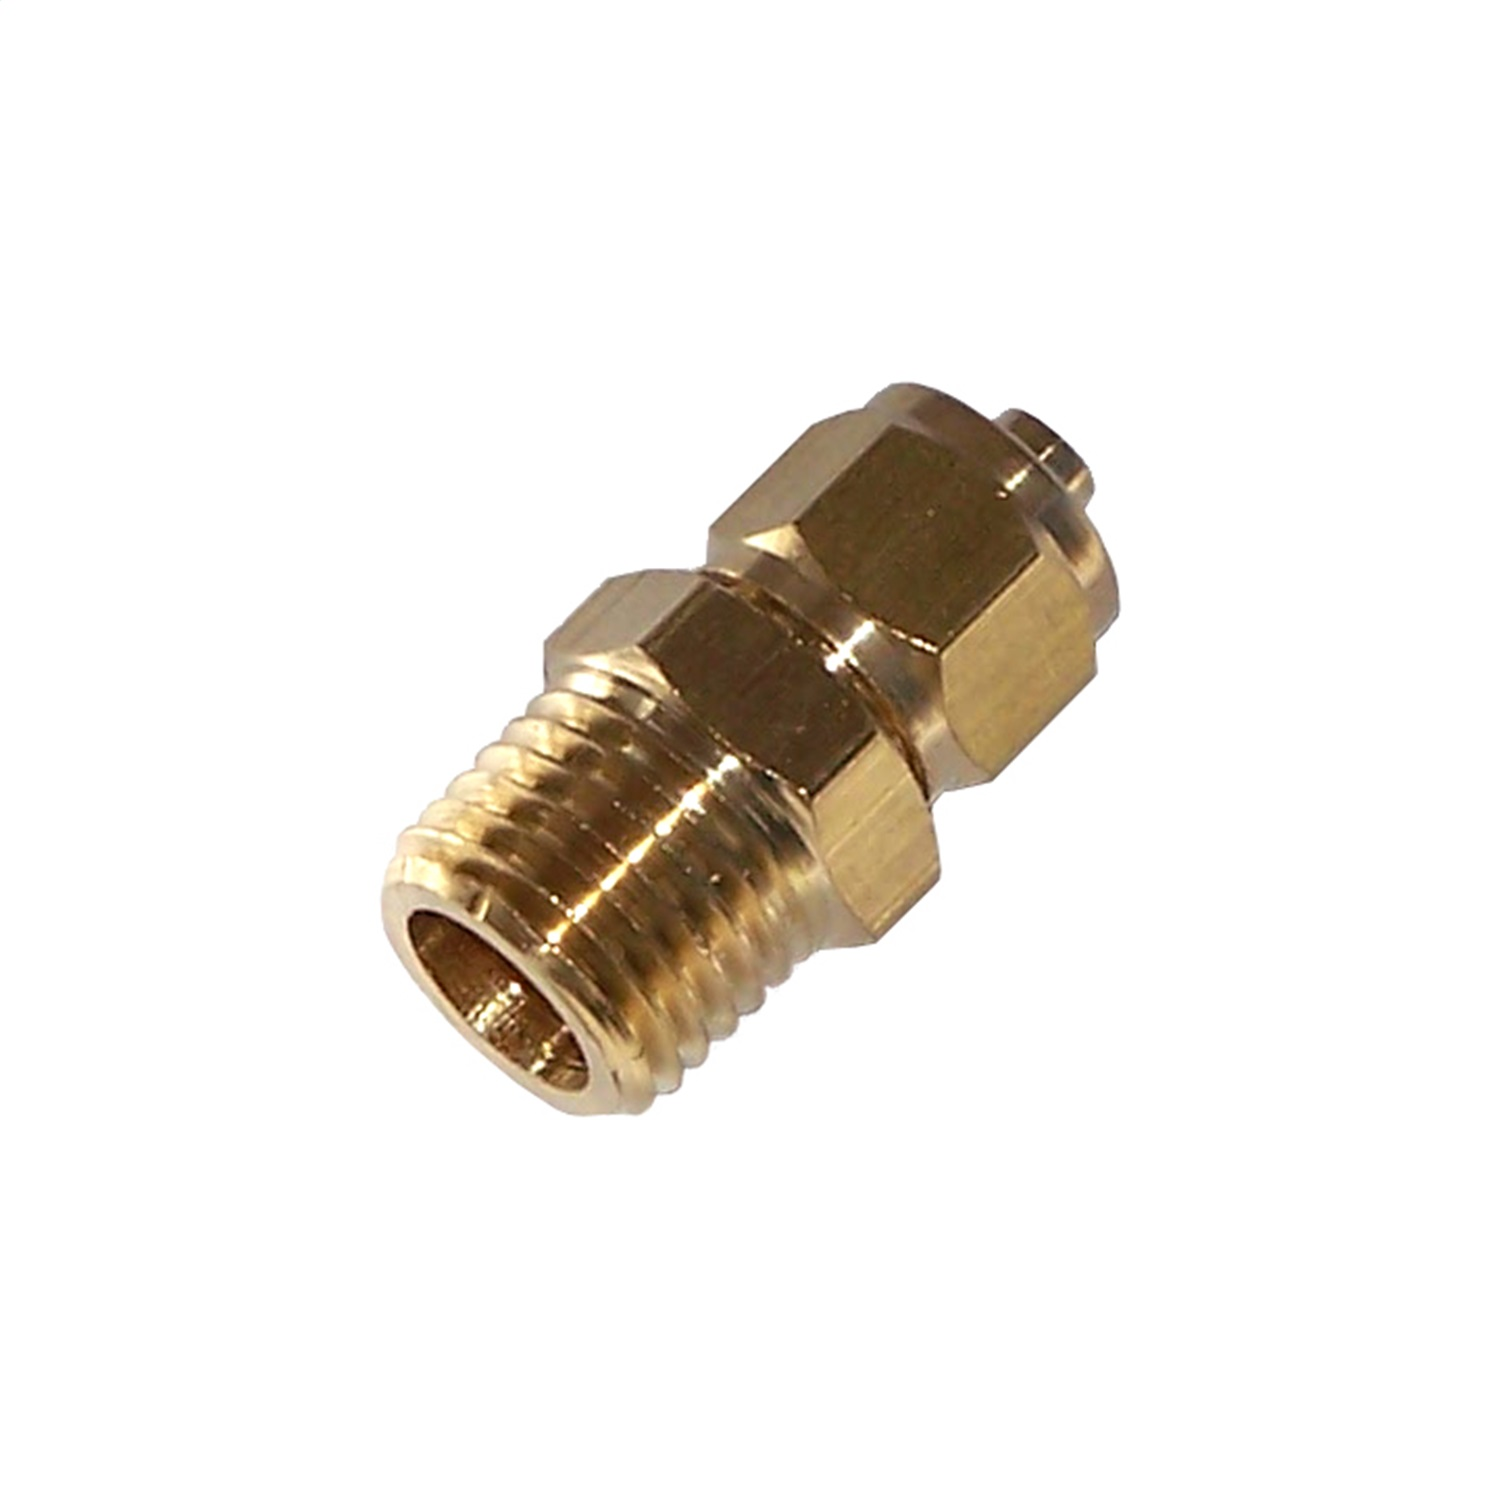 Purchase kleinn air horns compression fitting